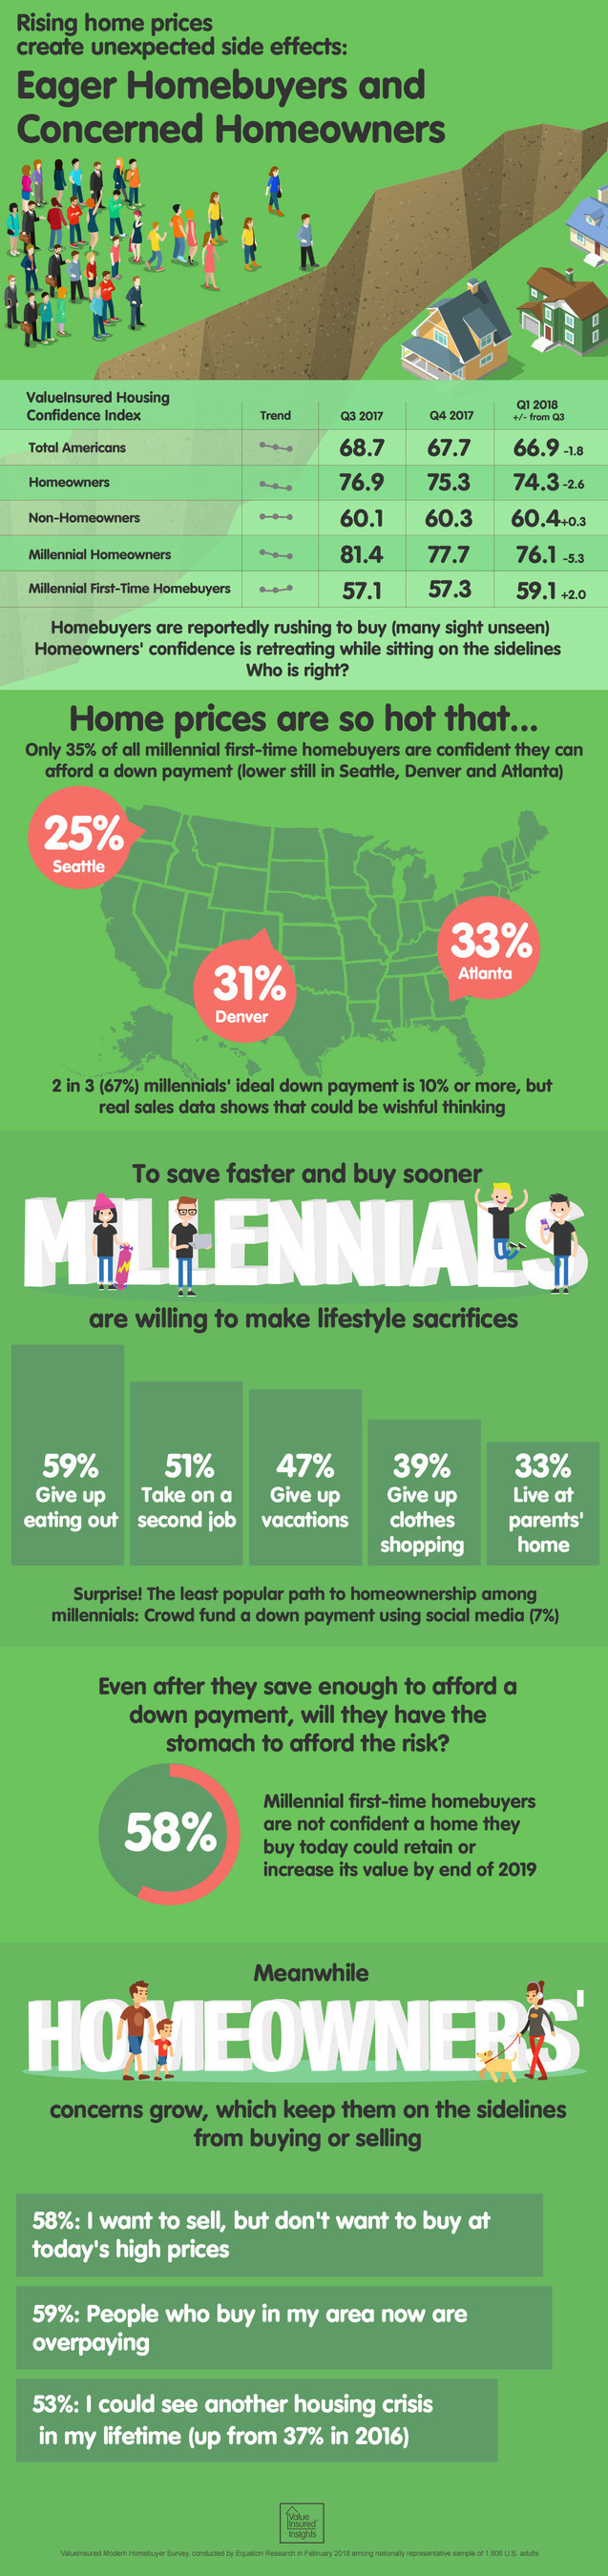 Infographic: Confidence Among Homeowners, Homebuyers on Diverging Paths